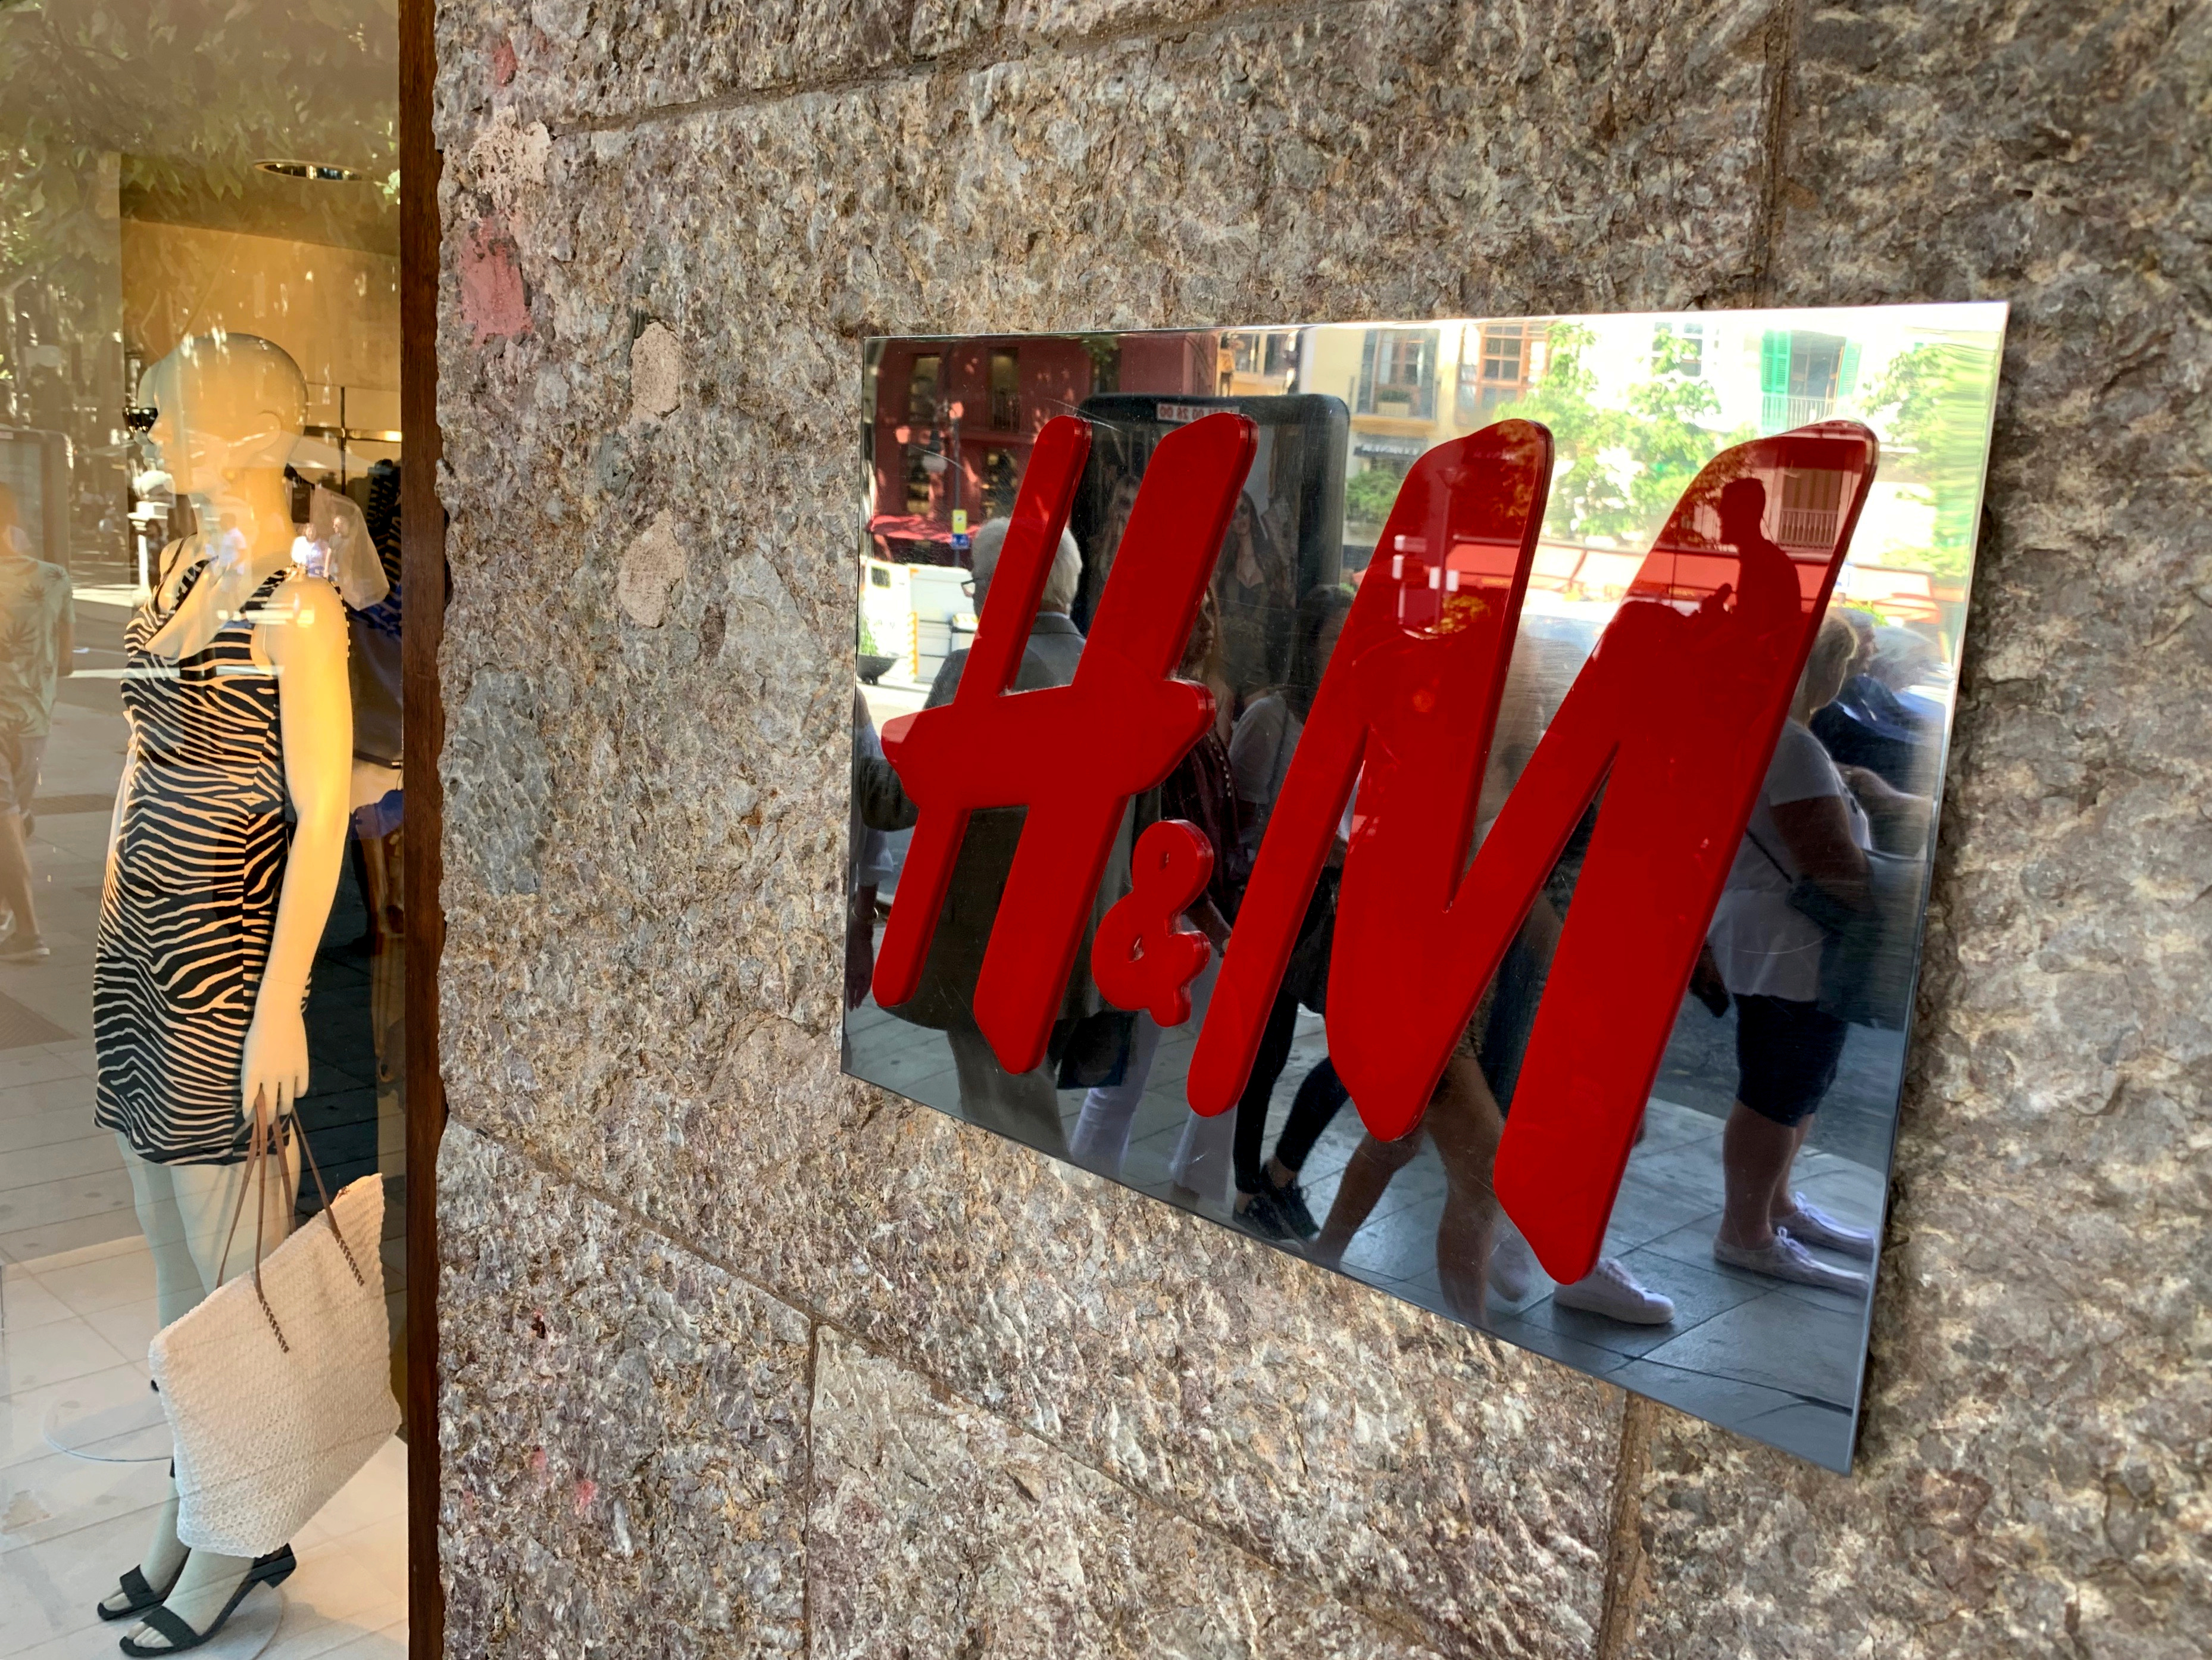 H&M to test selling external brands in strategy shift